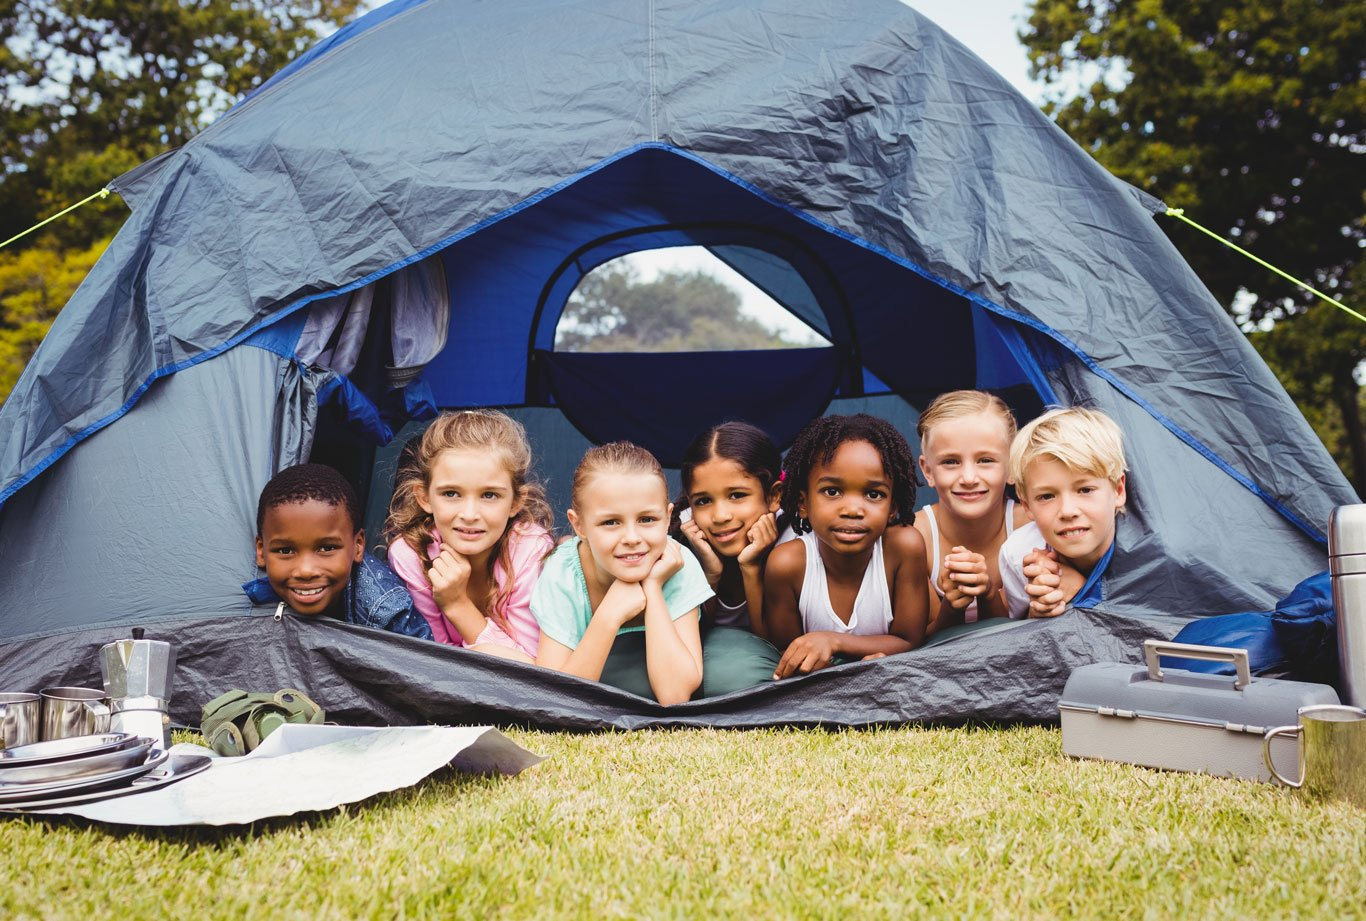 Camping-tent-1366-0618